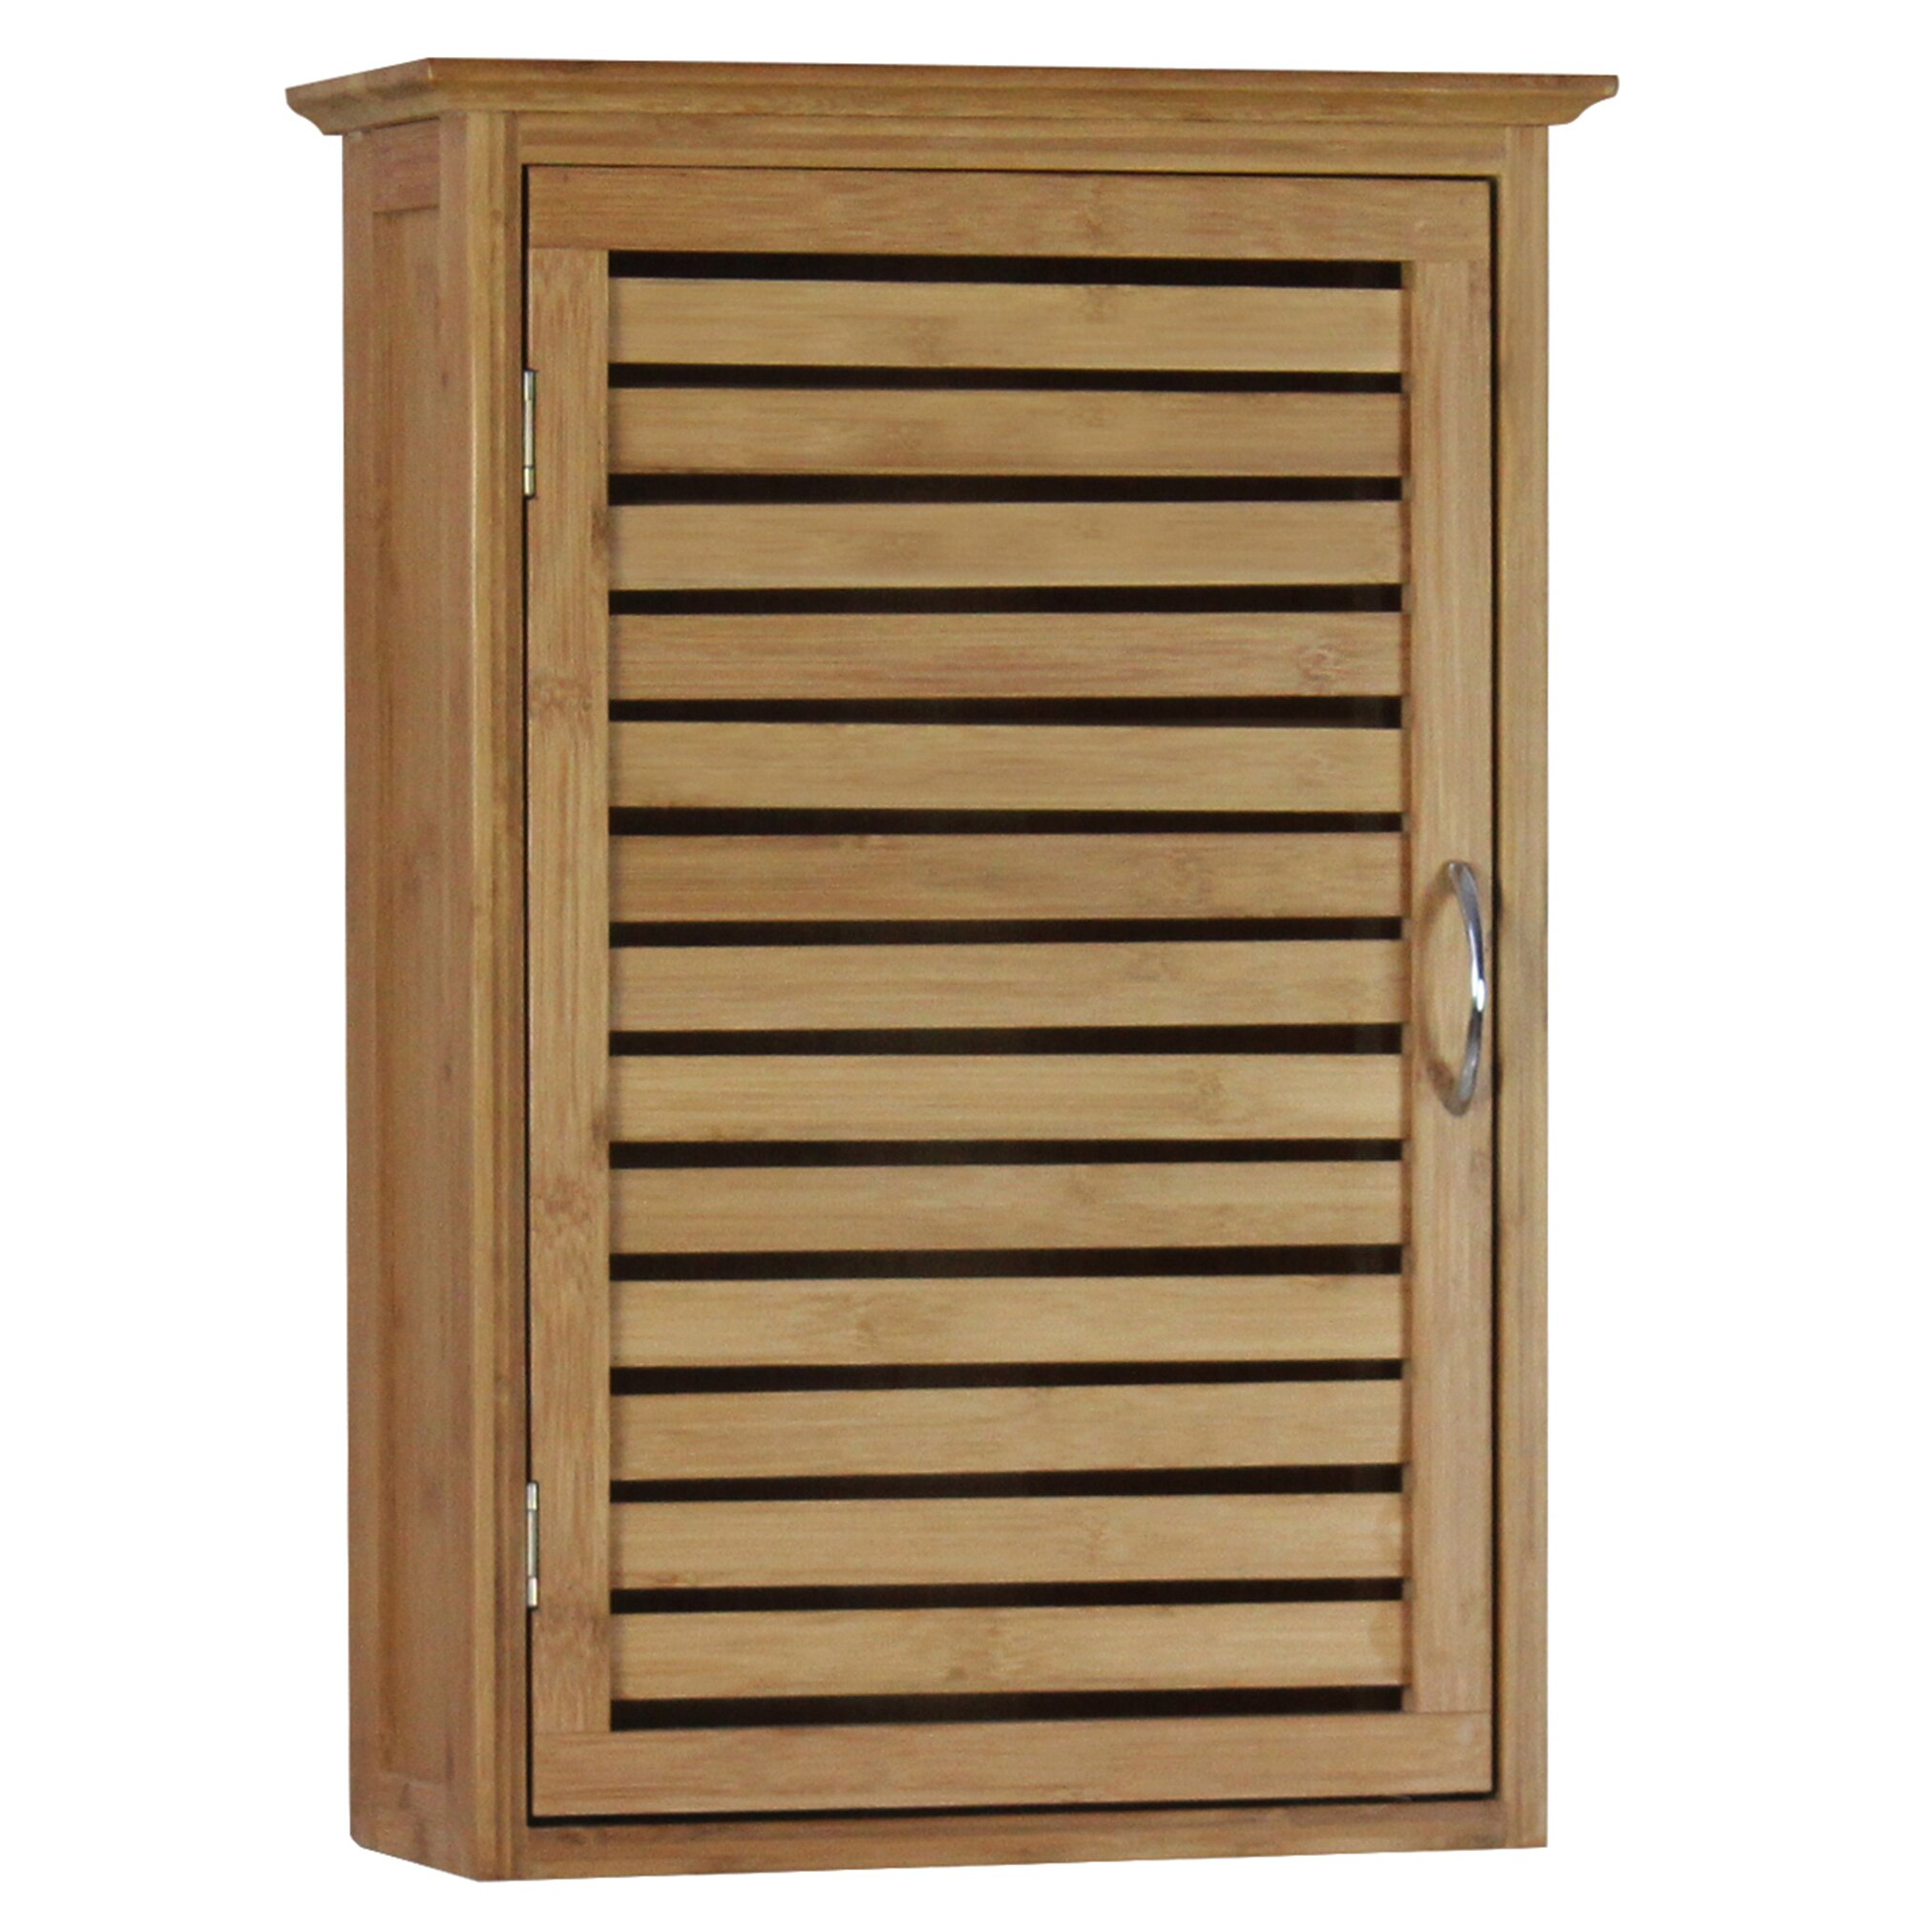 gallerie decor spa 14 5 x 21 wall mounted cabinet